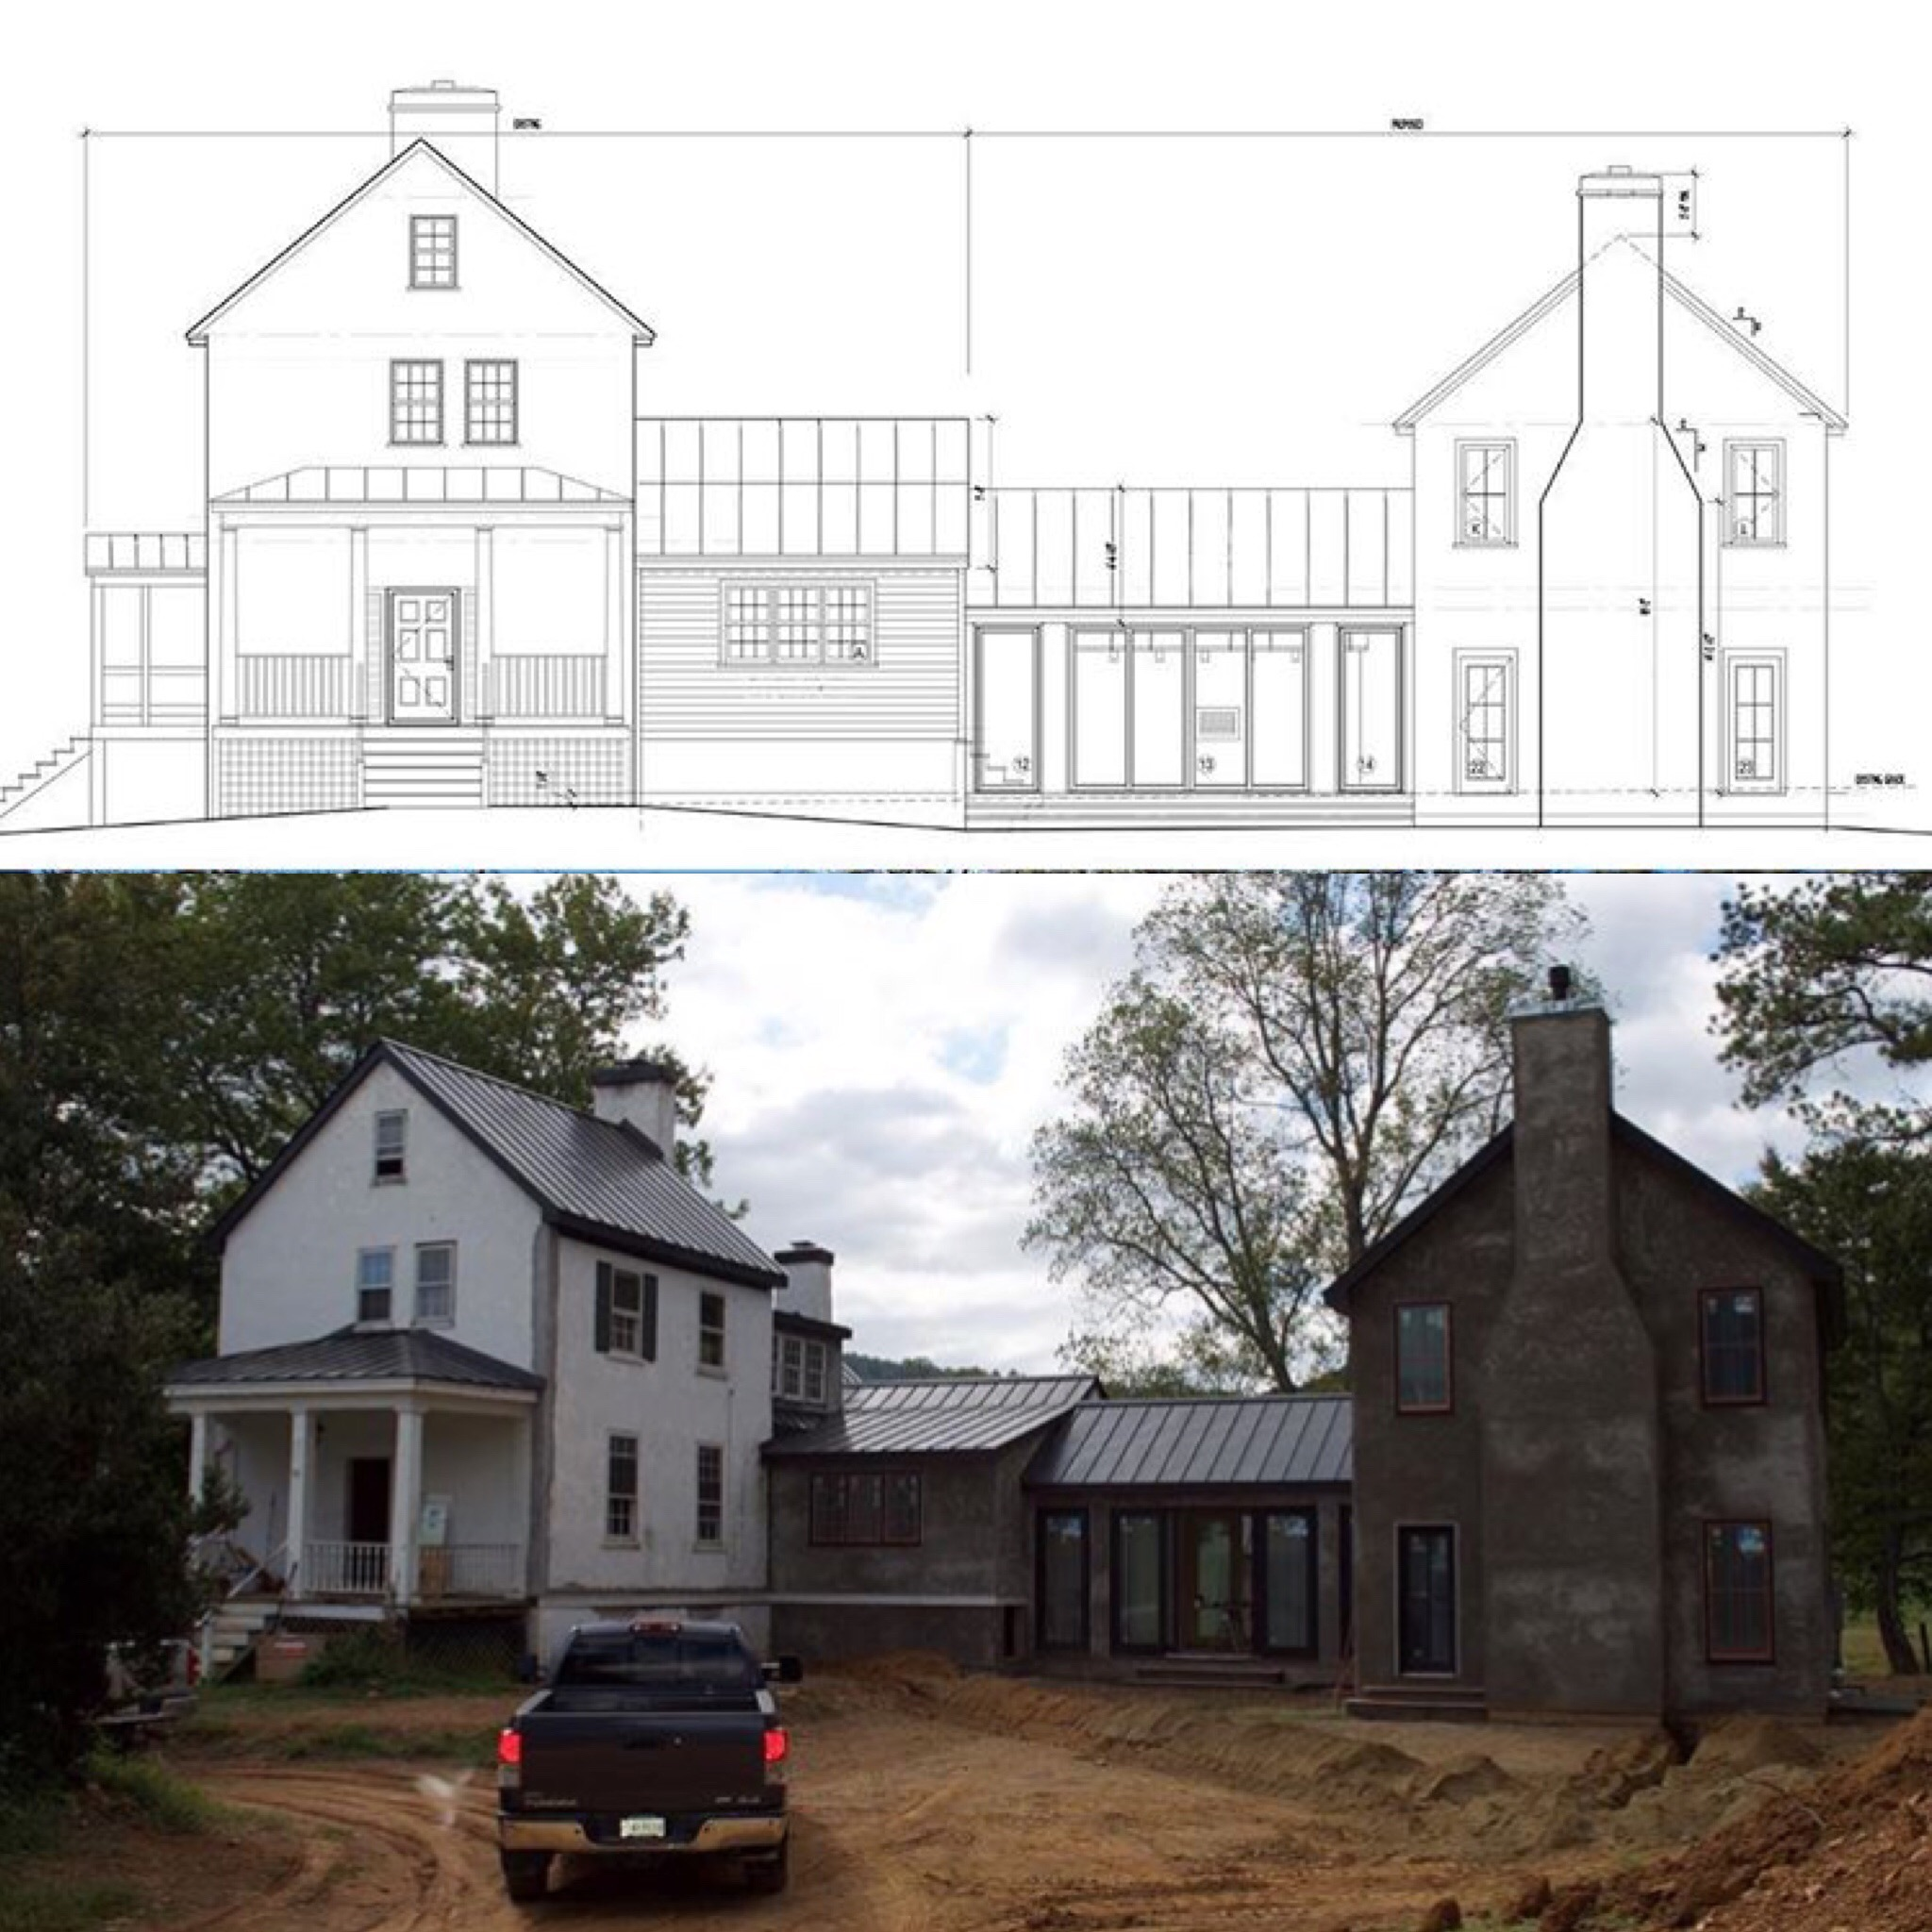 Conception to Construction at Spring Valley Farm.